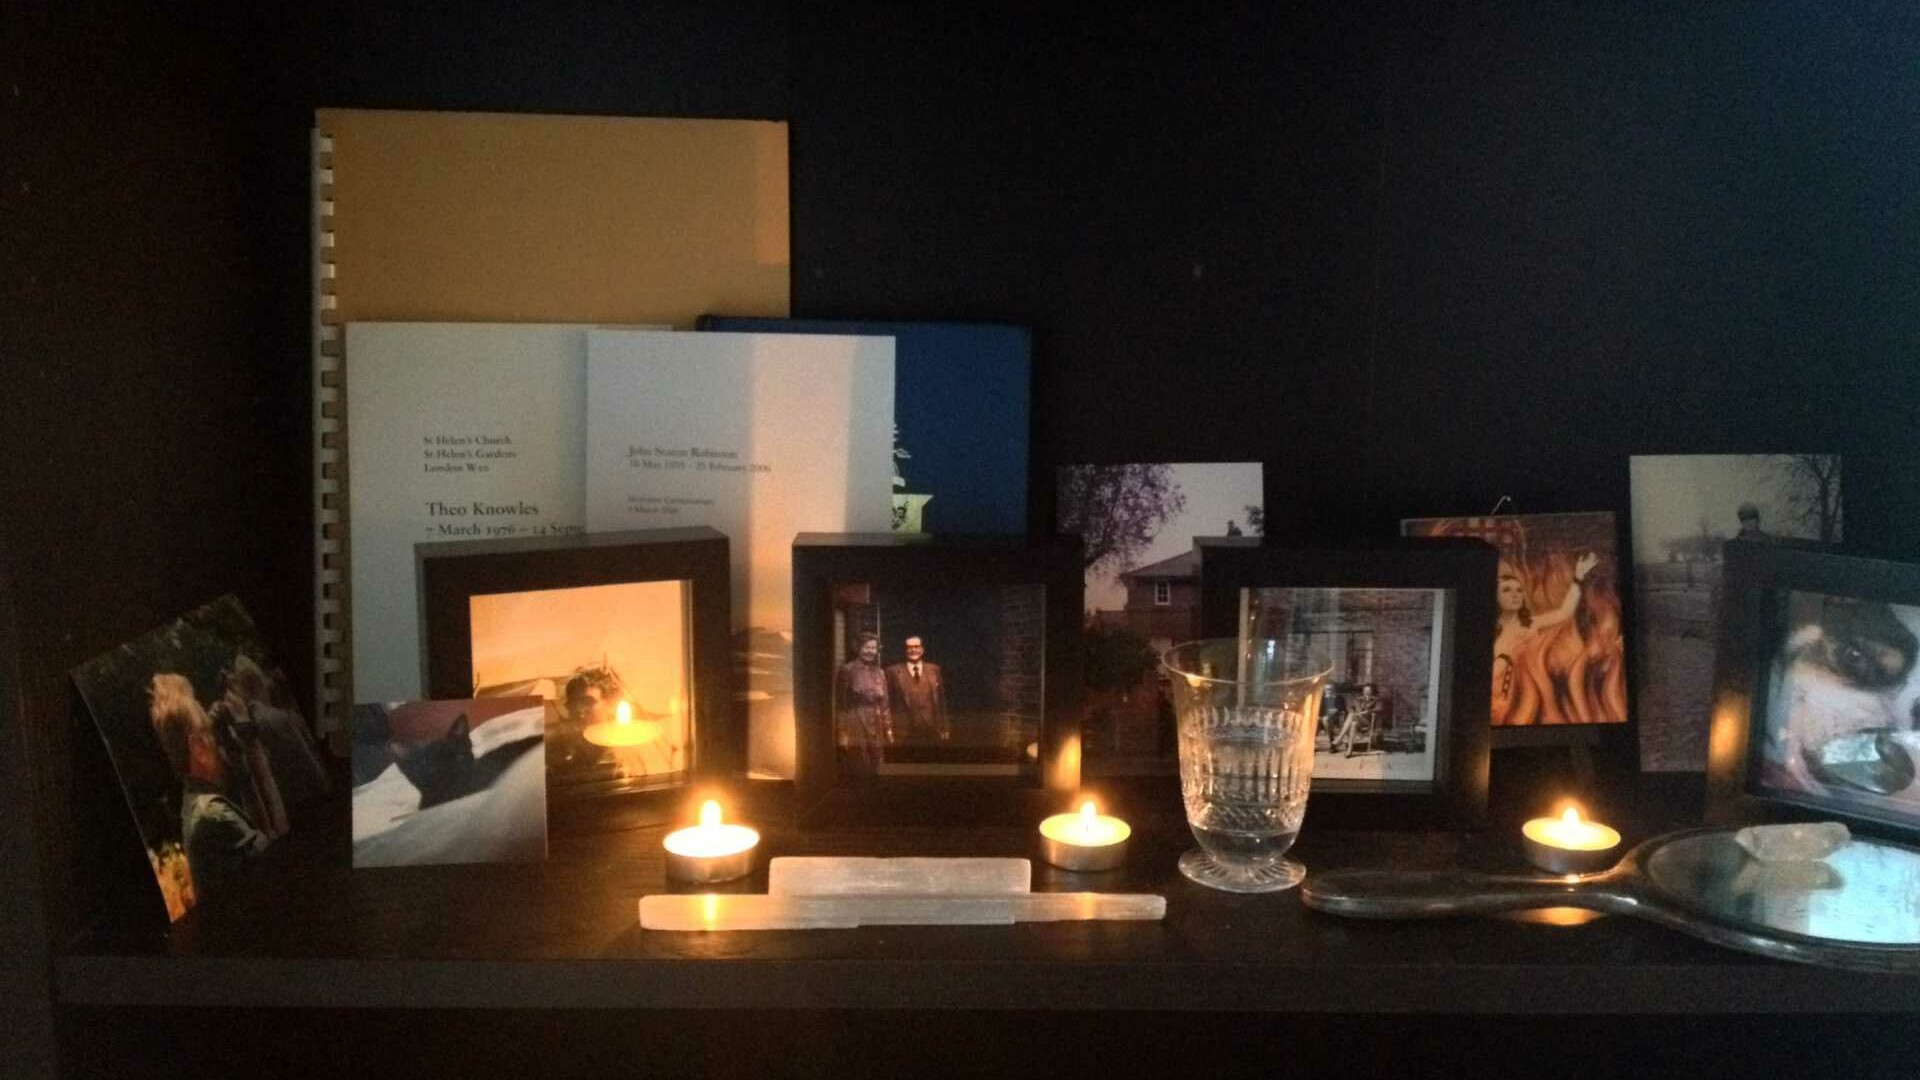 Memento Mori altar - a selection of family images and tea light candles on a dark shelf